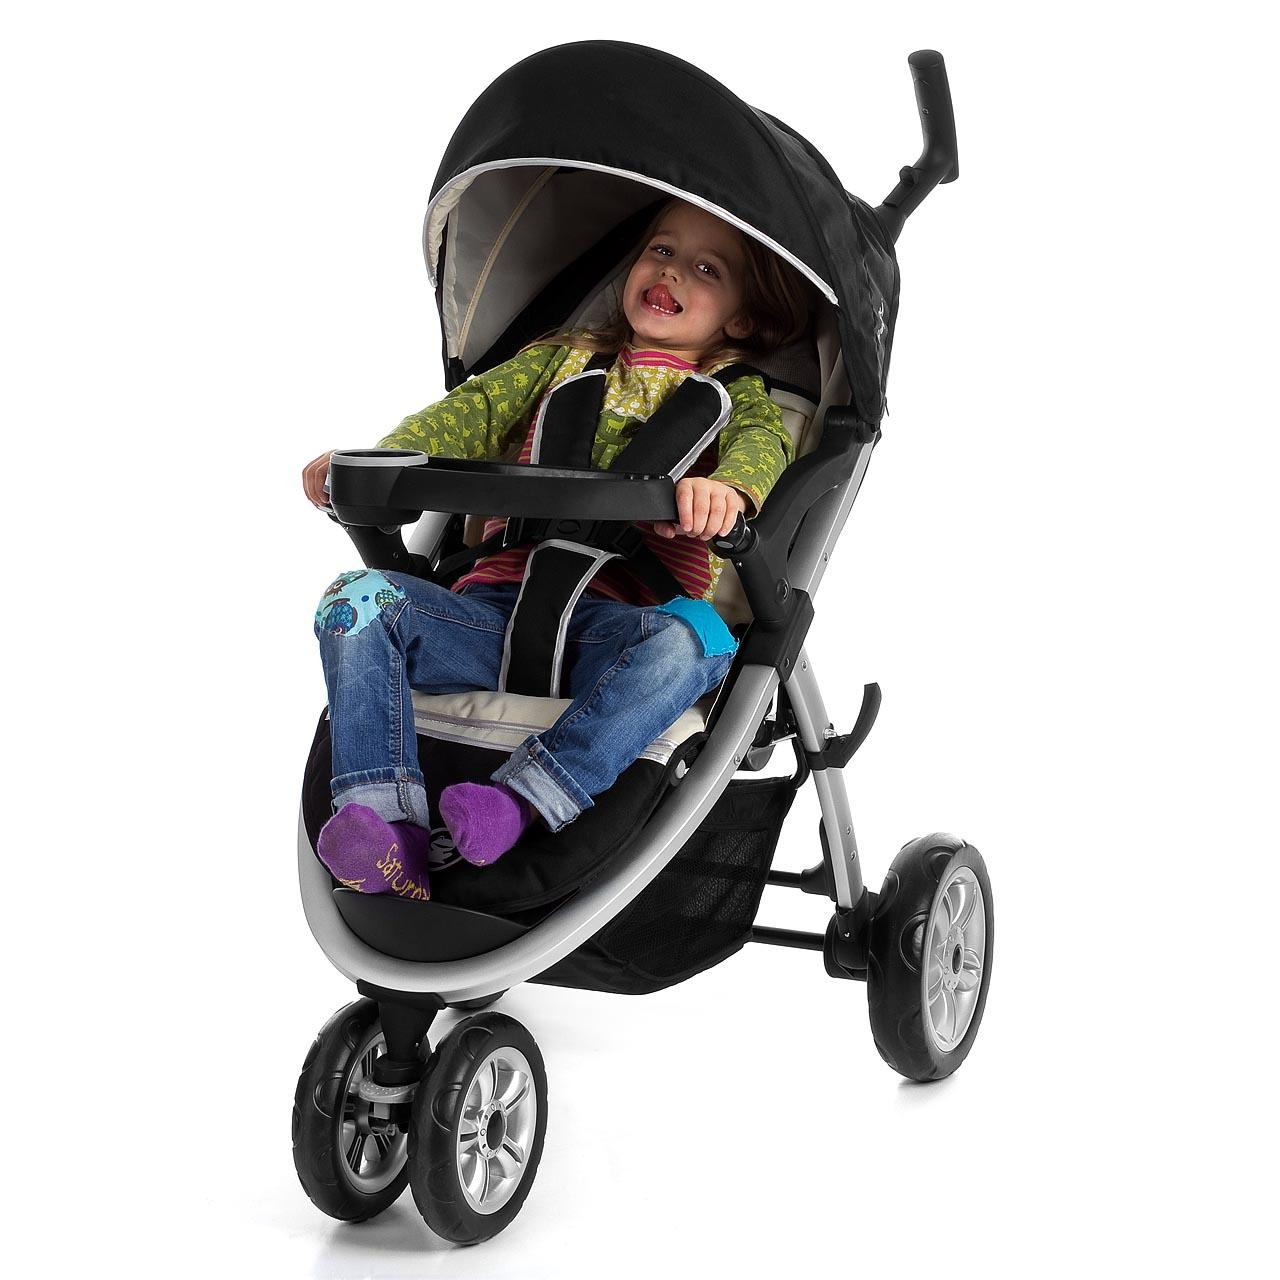 froggy buggy citybug kinderwagen baby sportwagen aluminium gefedert farbauswahl ebay. Black Bedroom Furniture Sets. Home Design Ideas